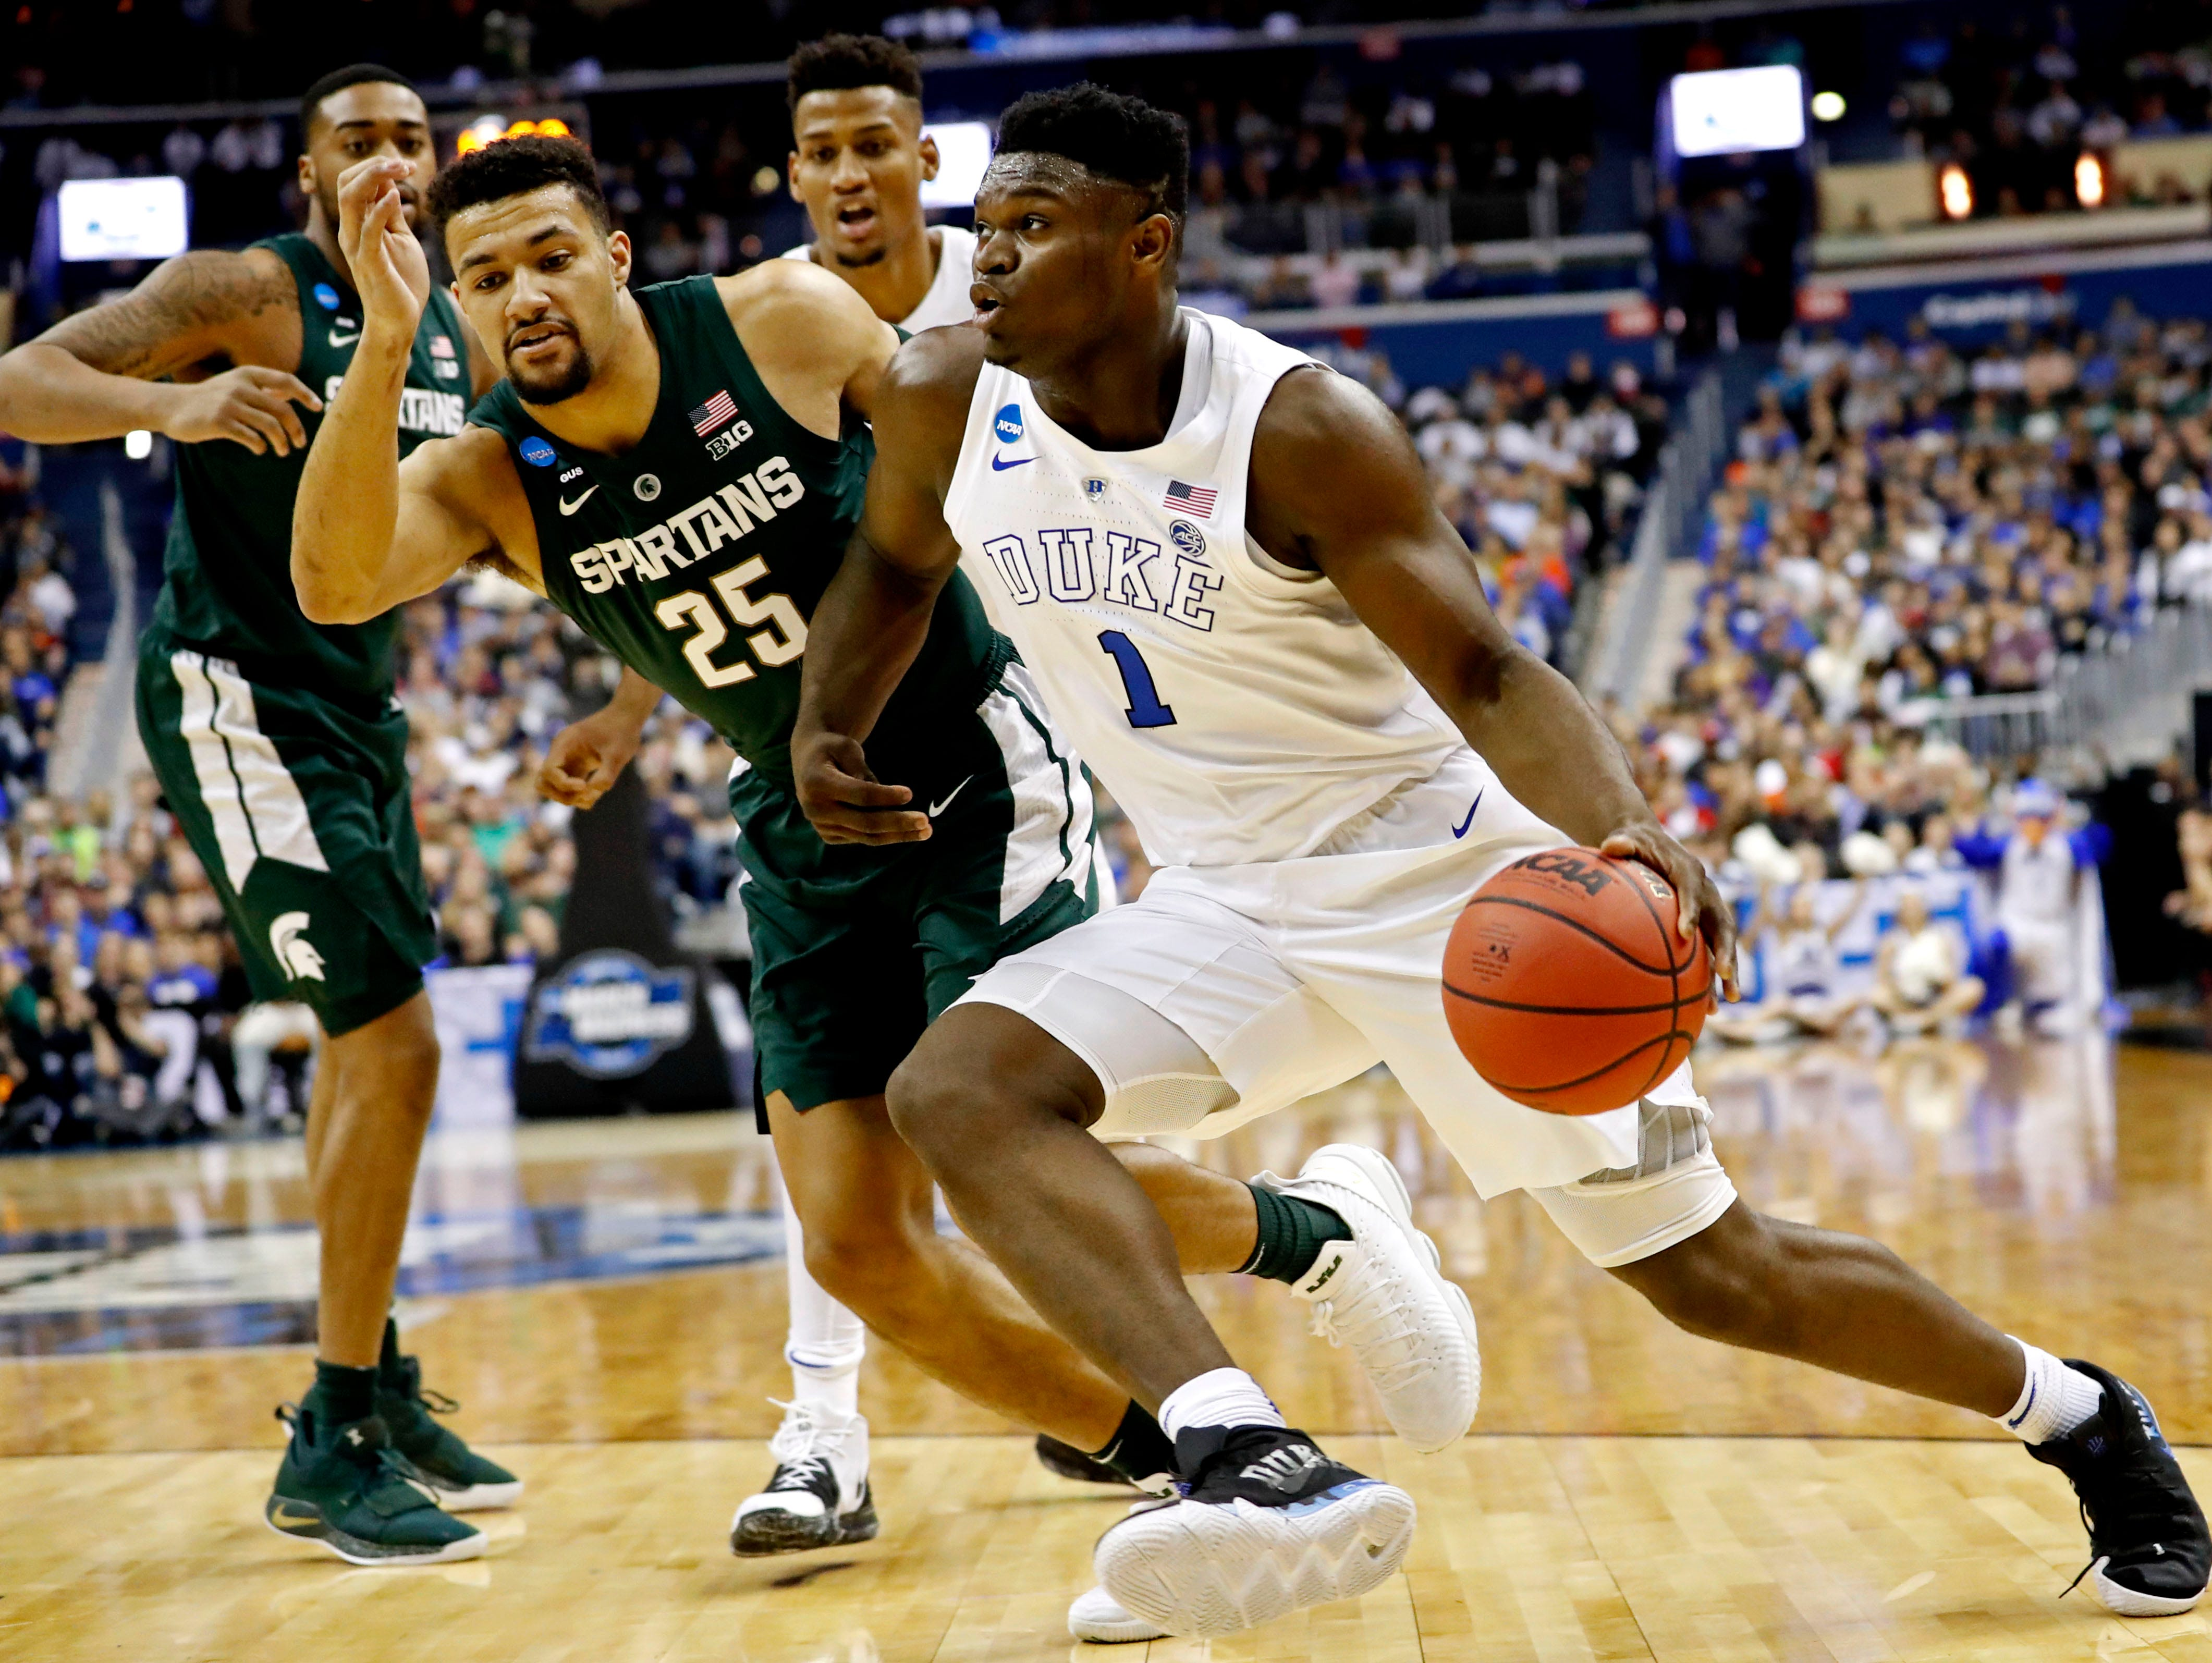 Mar 31, 2019; Washington, DC, USA; Duke Blue Devils forward Zion Williamson (1) drives to the basket against Michigan State Spartans forward Kenny Goins (25) during the first half in the championship game of the east regional of the 2019 NCAA Tournament at Capital One Arena. Mandatory Credit: Geoff Burke-USA TODAY Sports